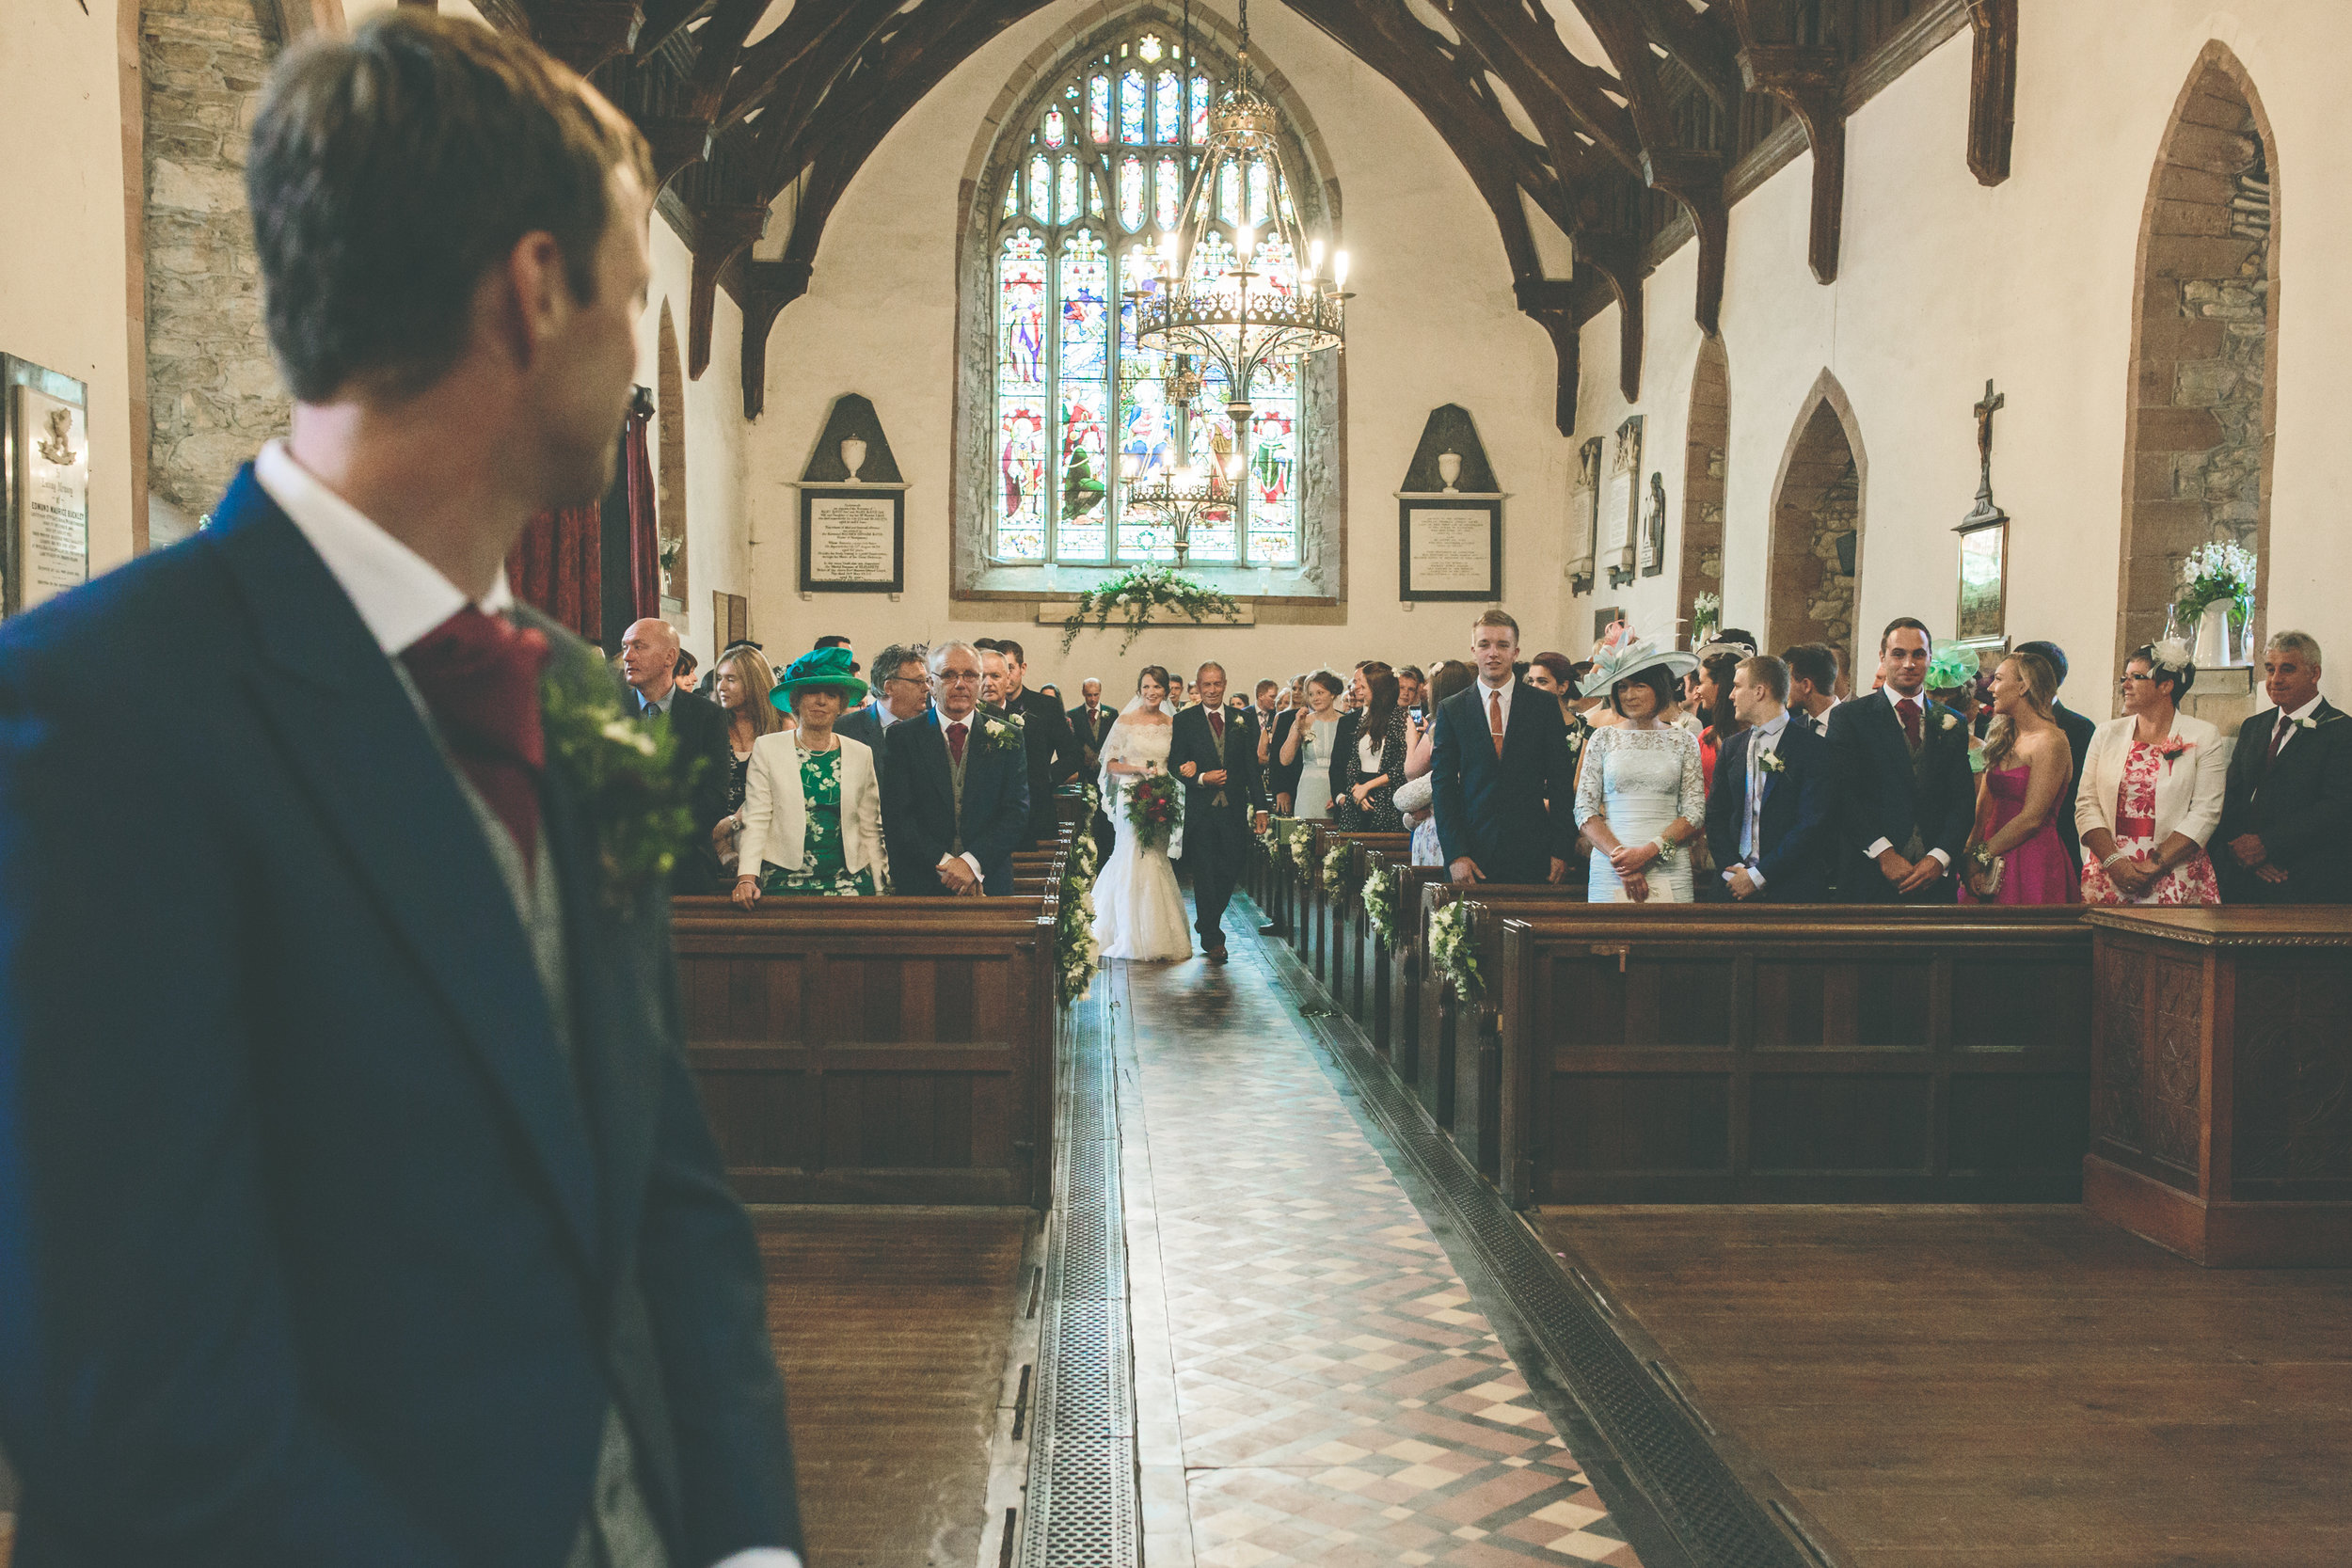 Montgomery Church wedding, photography by Olivia Moon